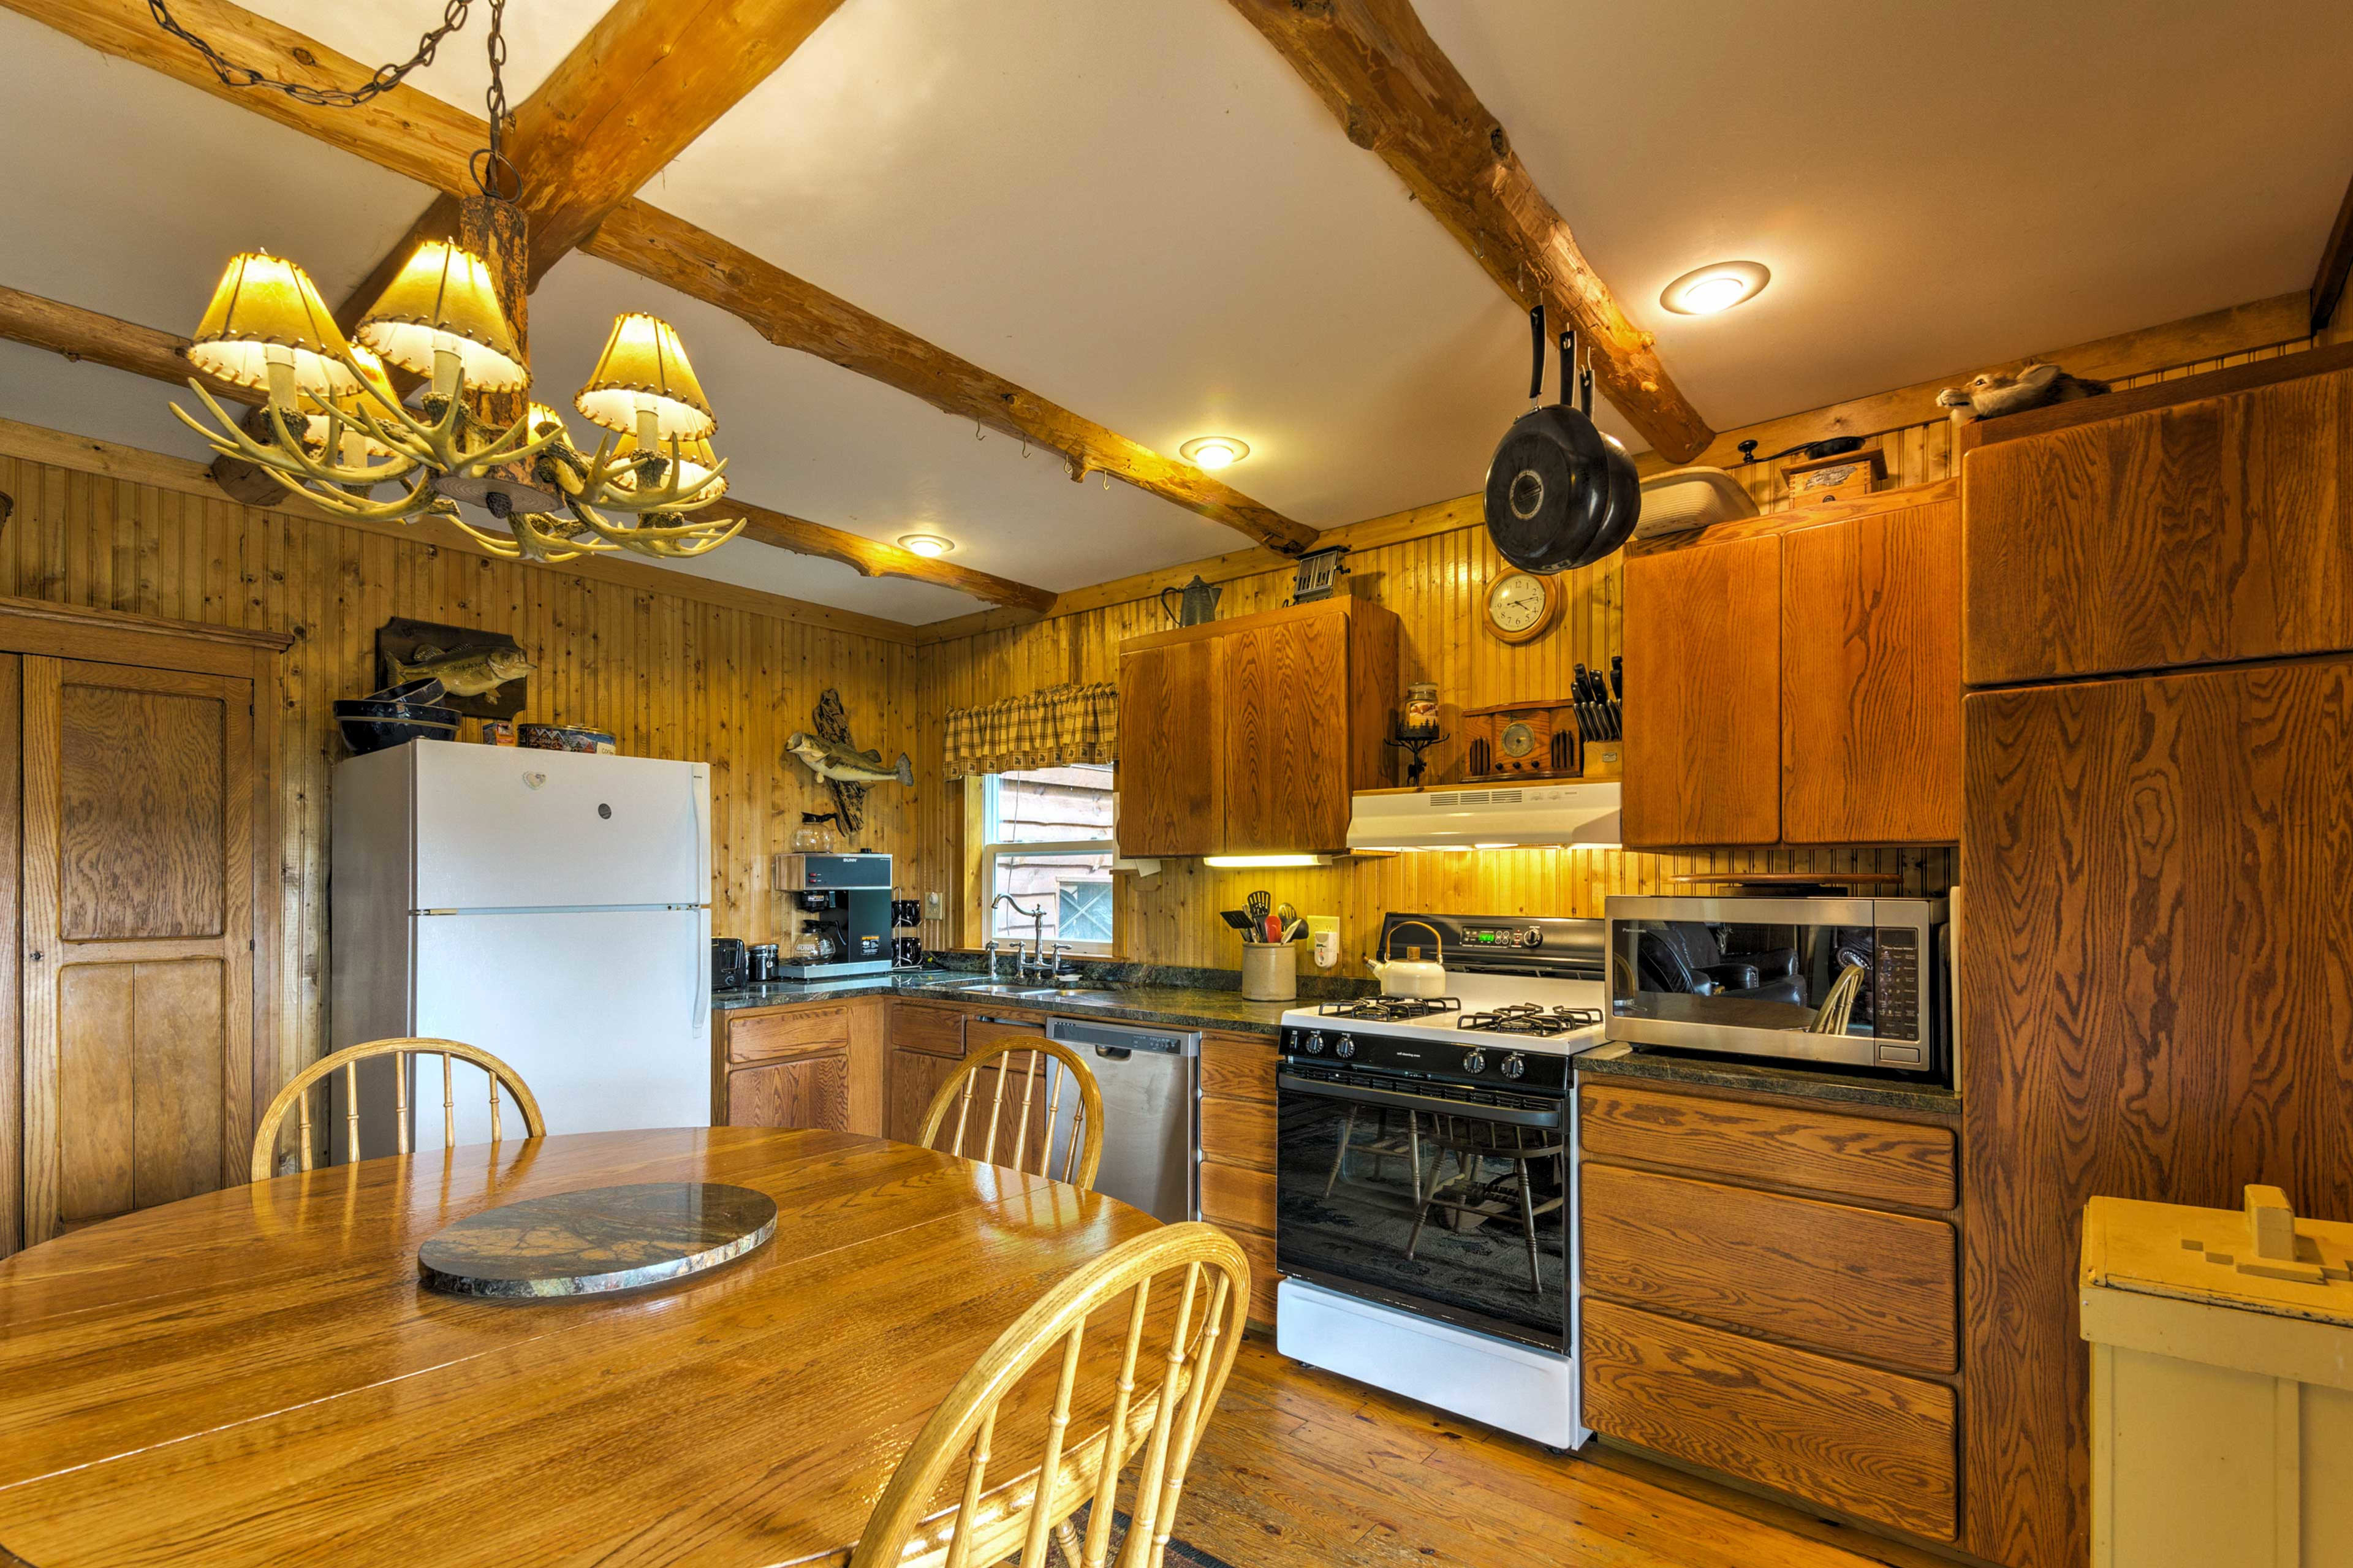 The fully equipped kitchen will handle all of your culinary needs.